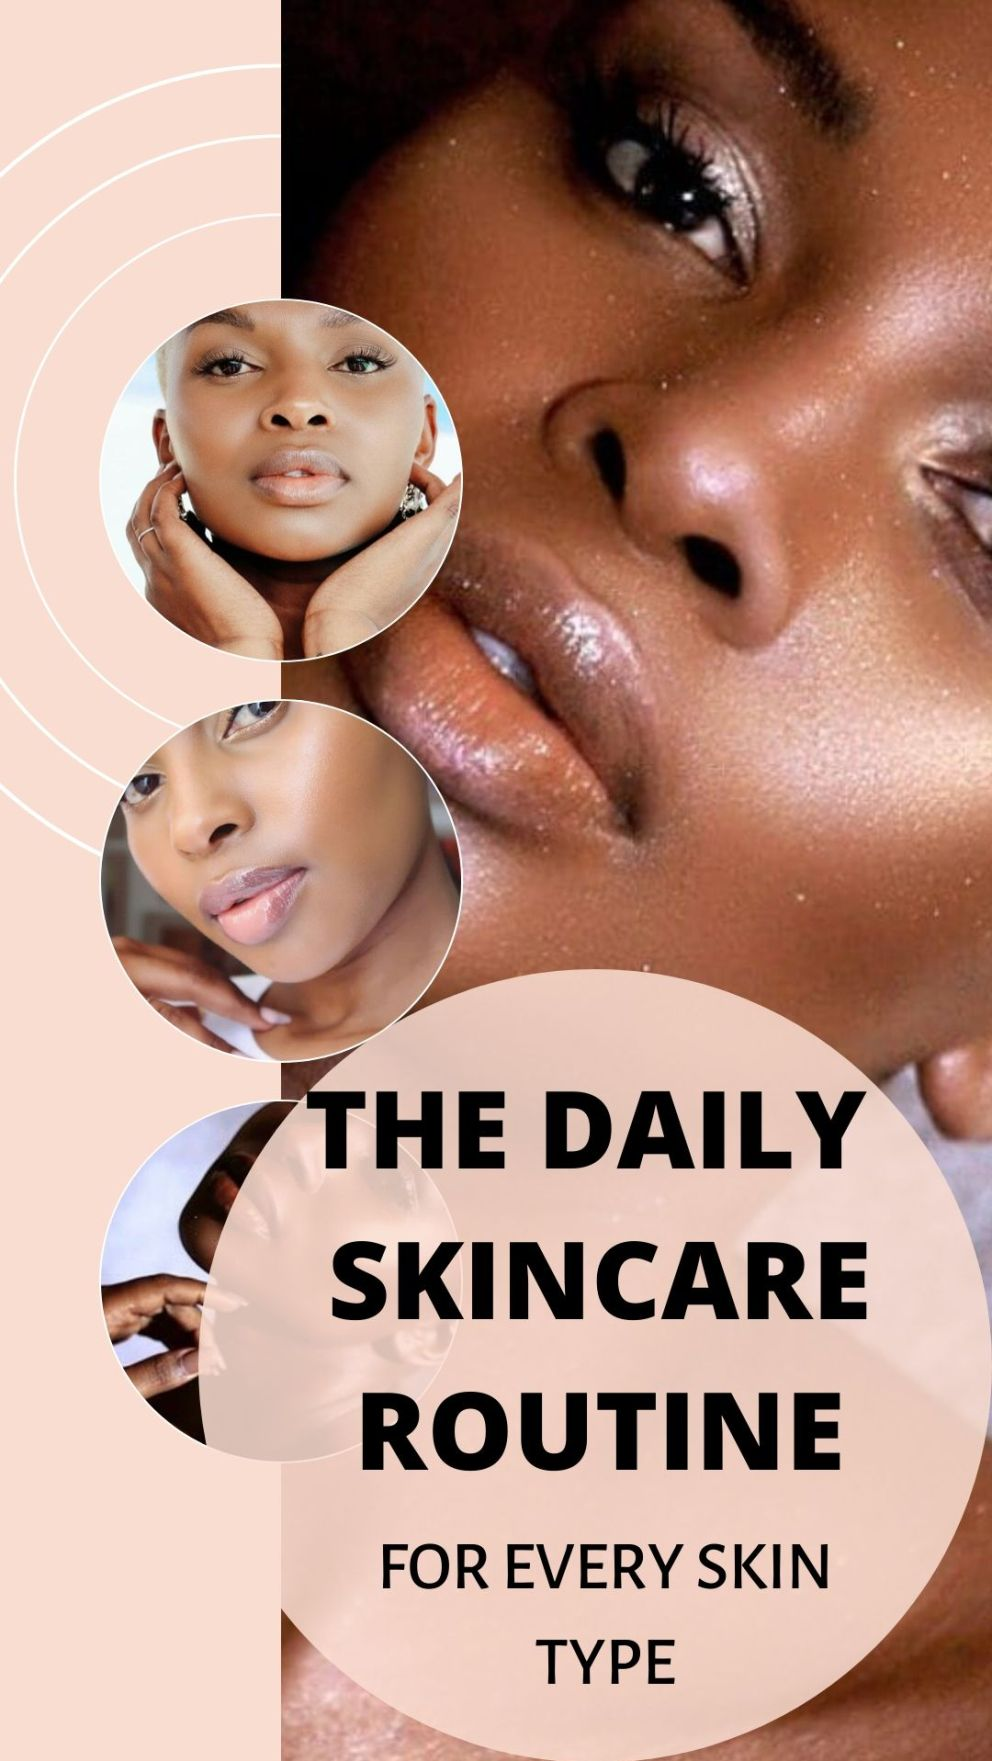 The Daily Skin Care Routine To Follow For Every Skin Type